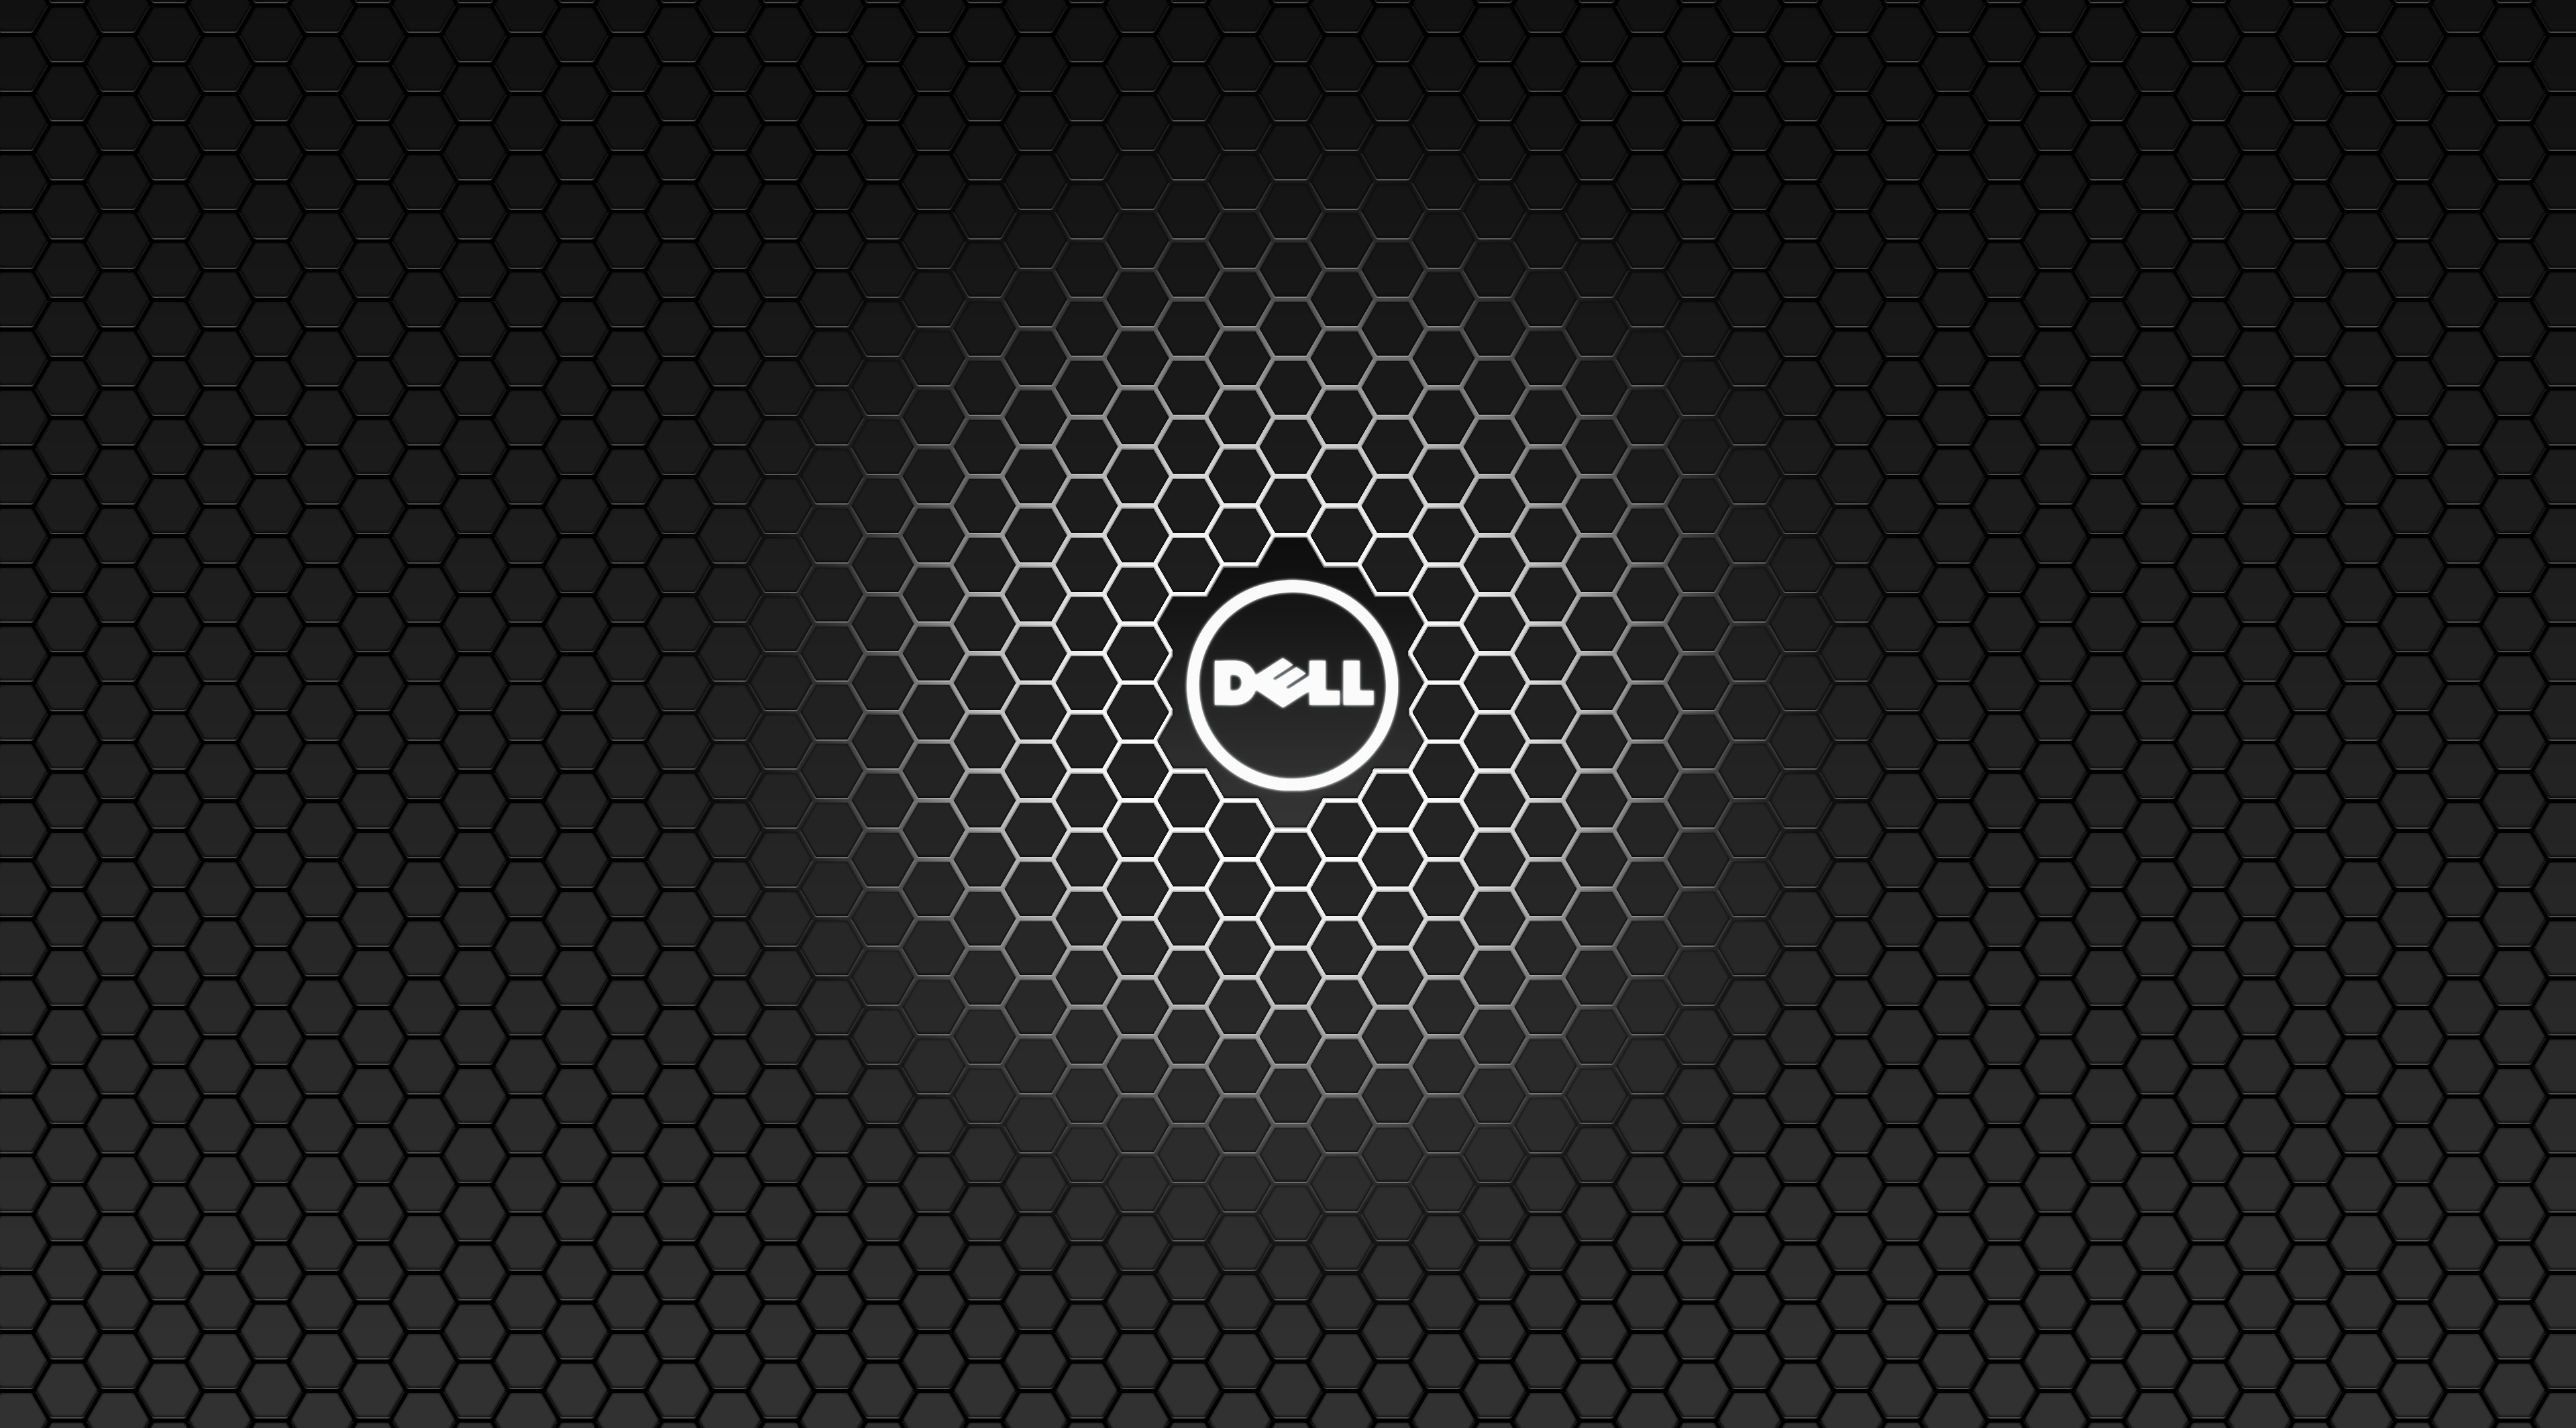 dell desktop backgrounds wallpaper | hd wallpapers | pinterest